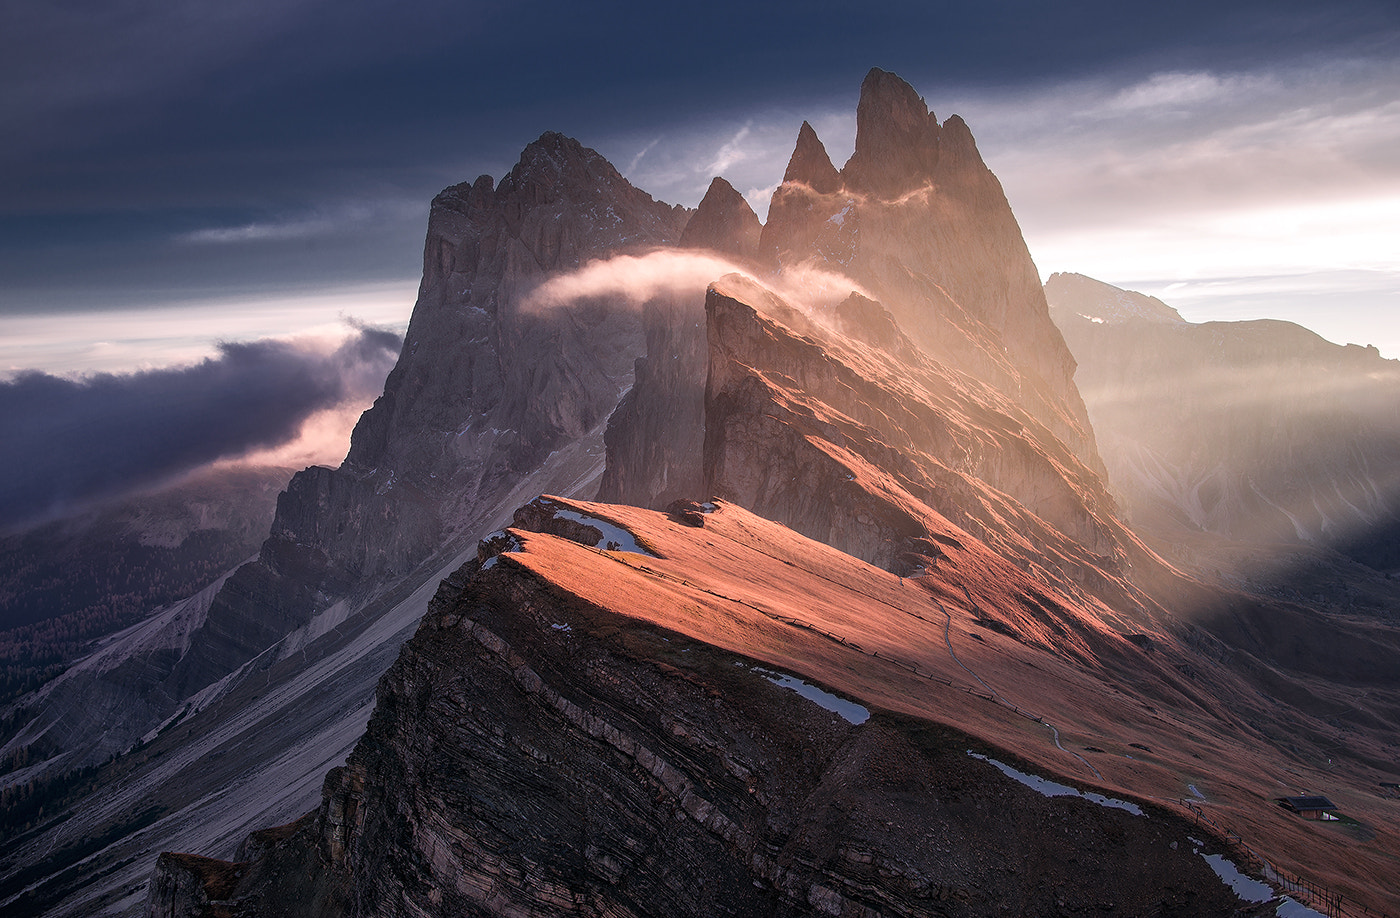 Photograph Attention Grabber by Max Rive on 500px